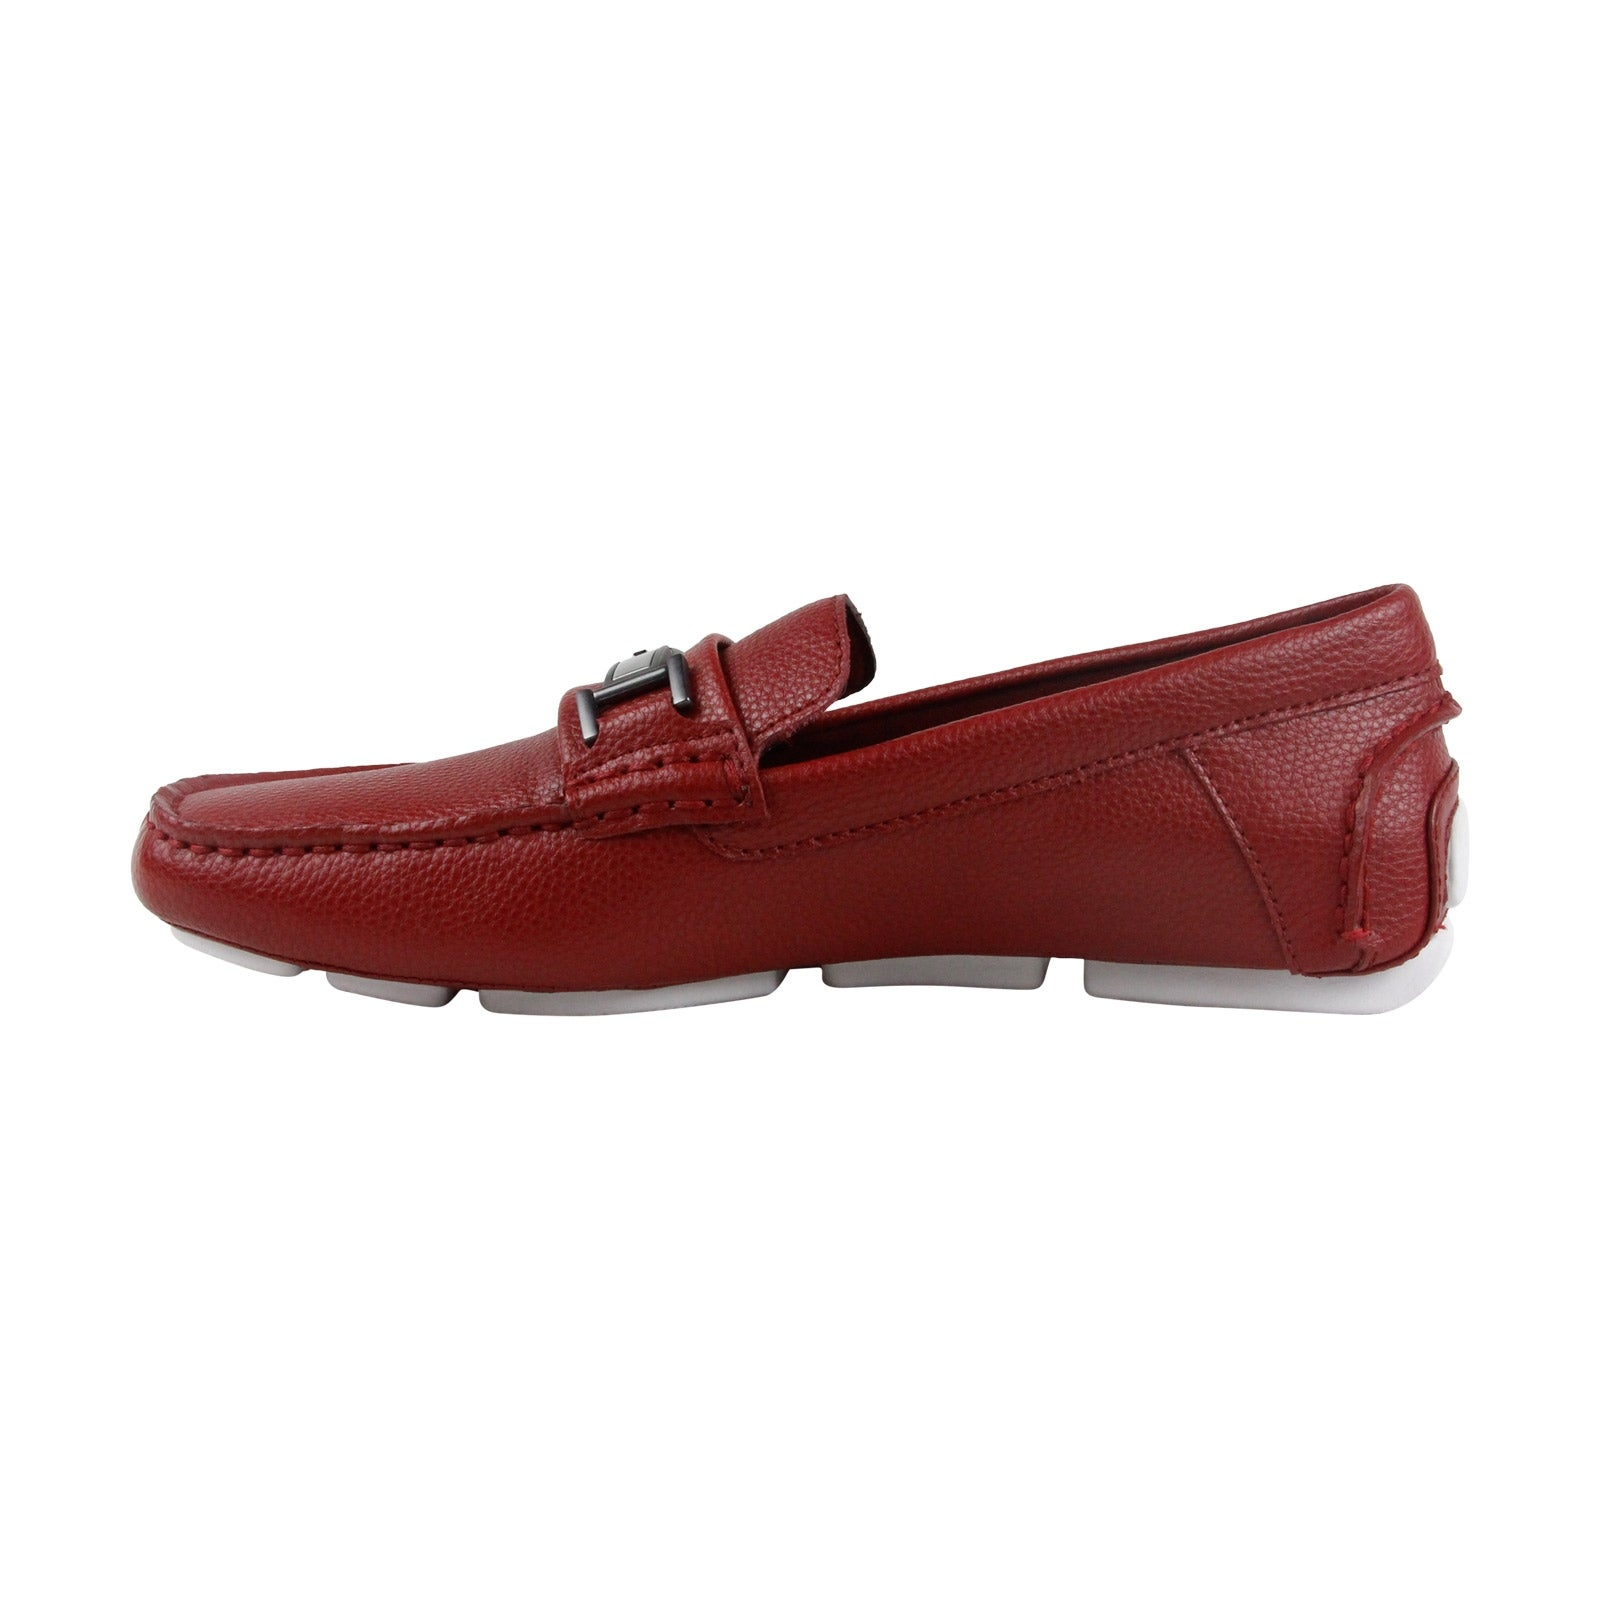 ea9a2e69de9 Shop Calvin Klein Magnus Mens Red Leather Casual Dress Slip On Loafers Shoes  - Free Shipping Today - Overstock - 19512860